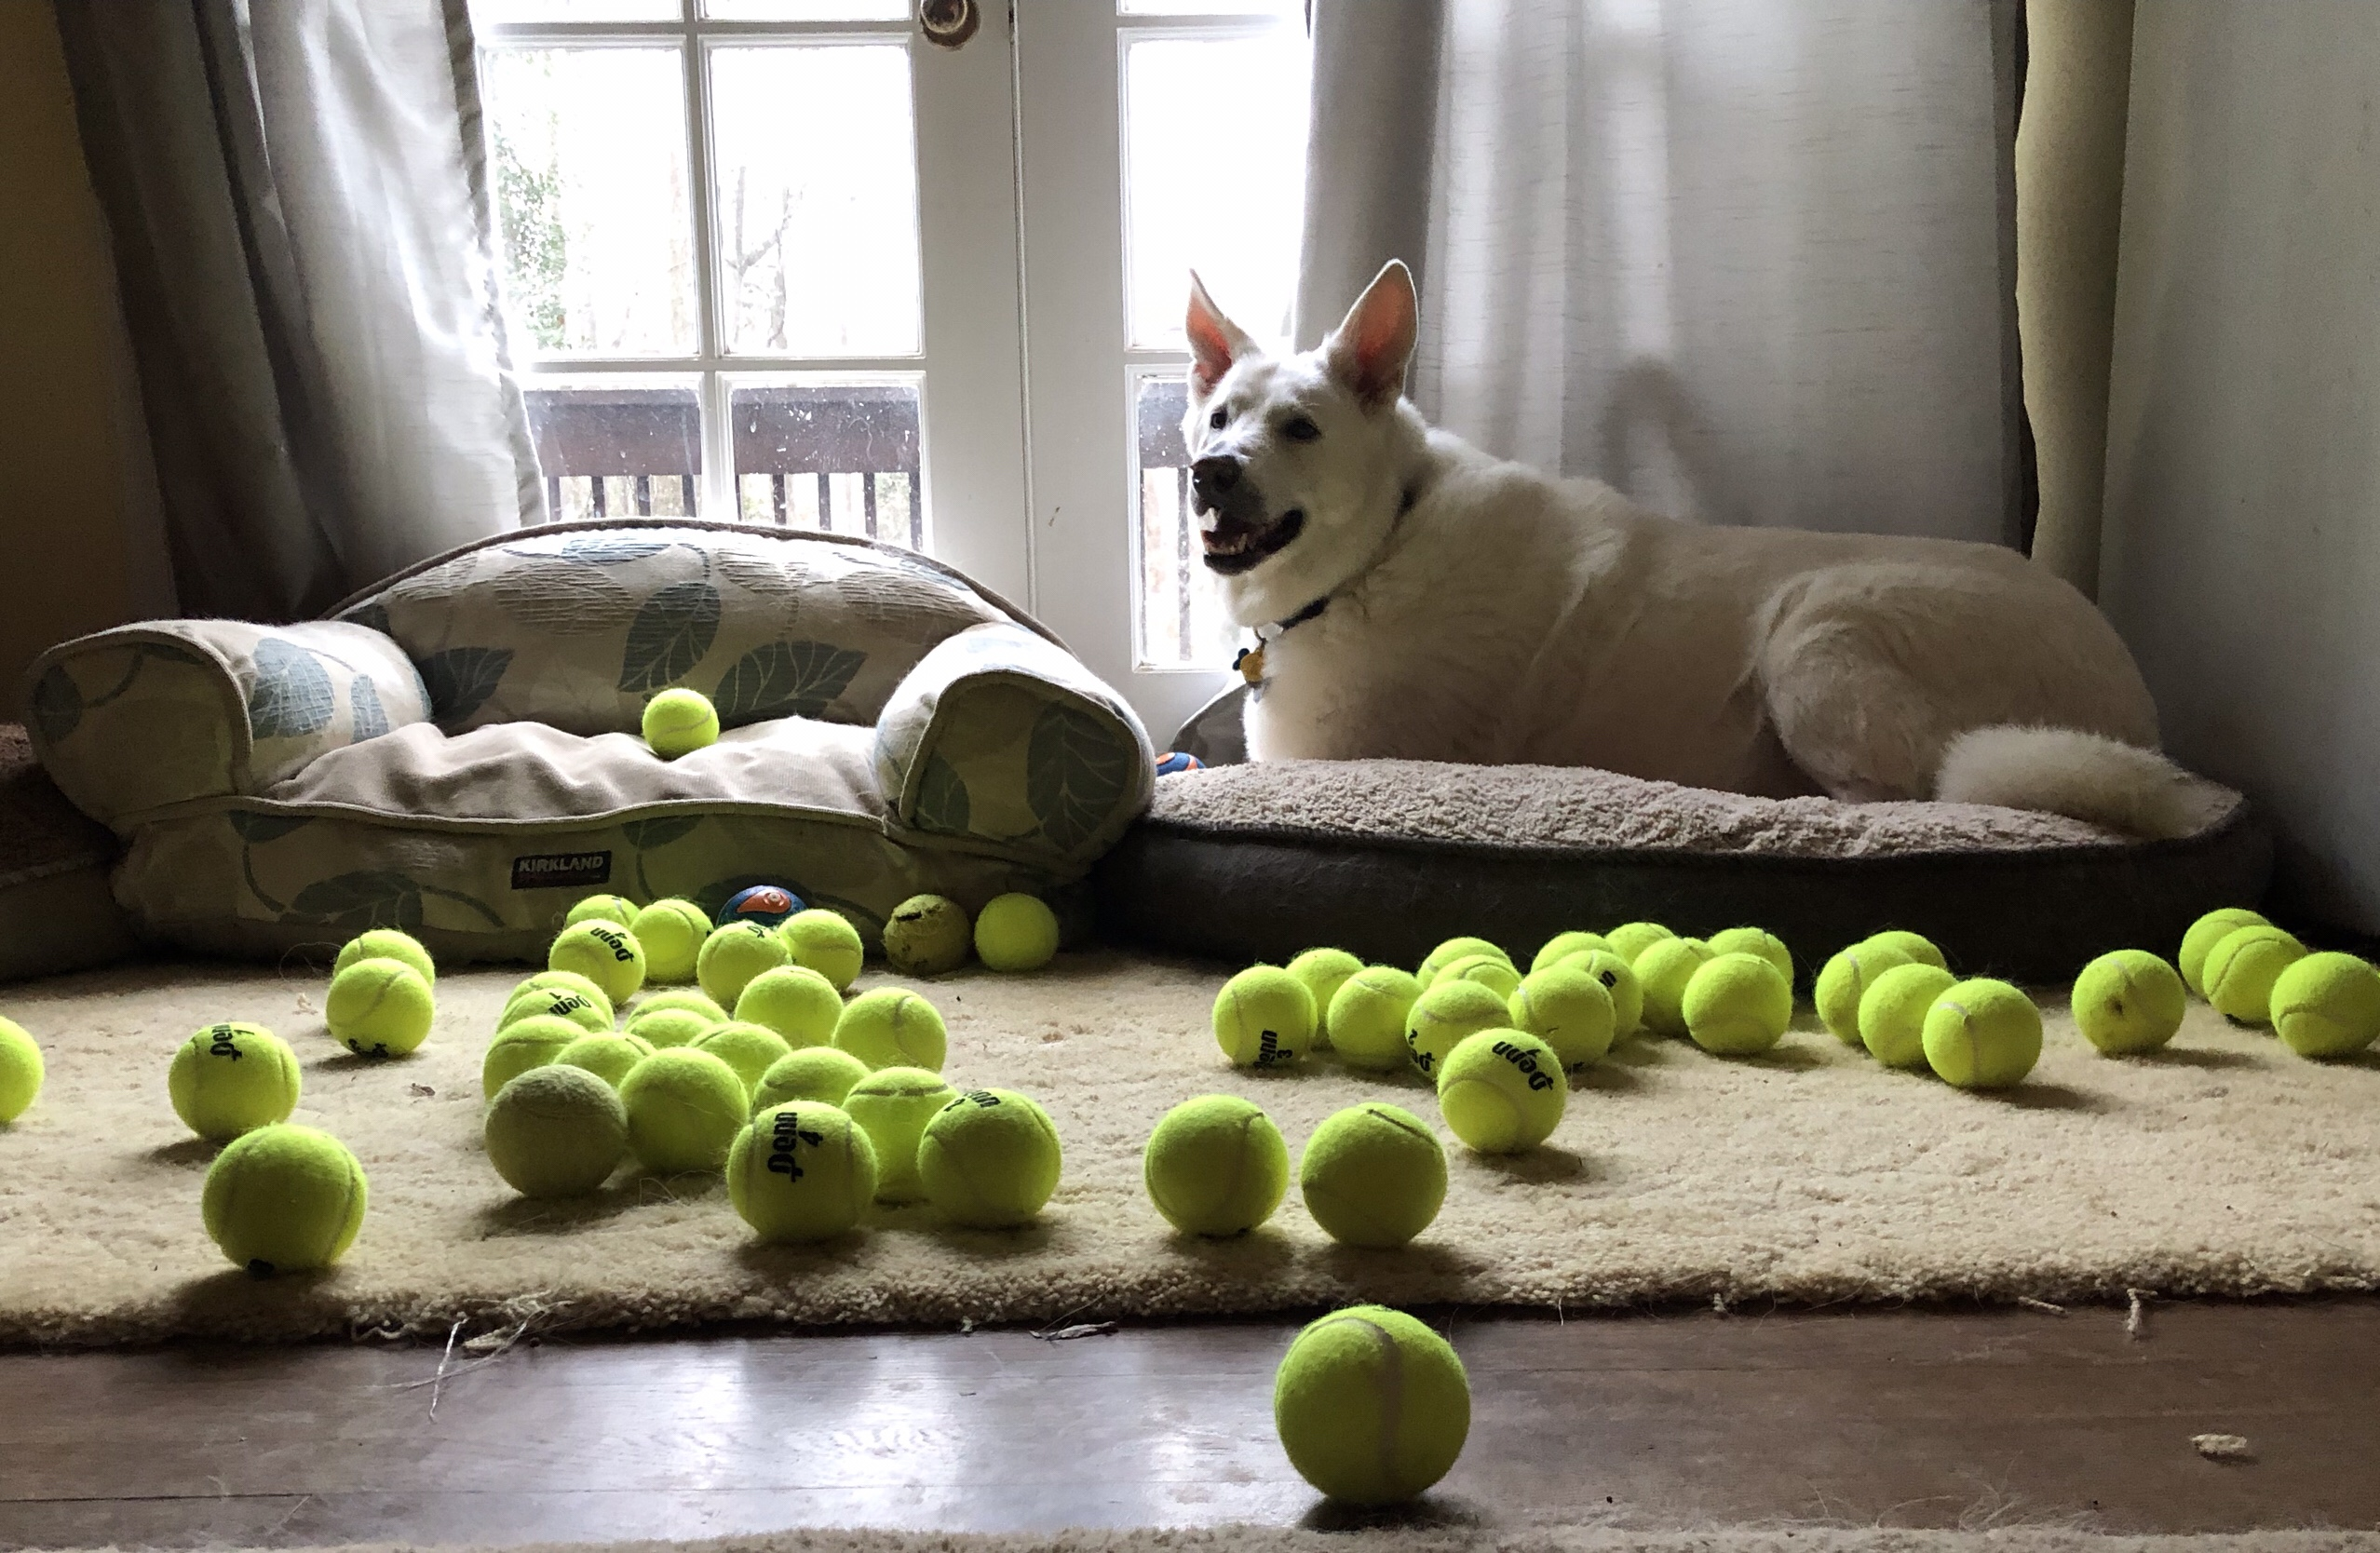 Yuki with his 60 new tennis balls